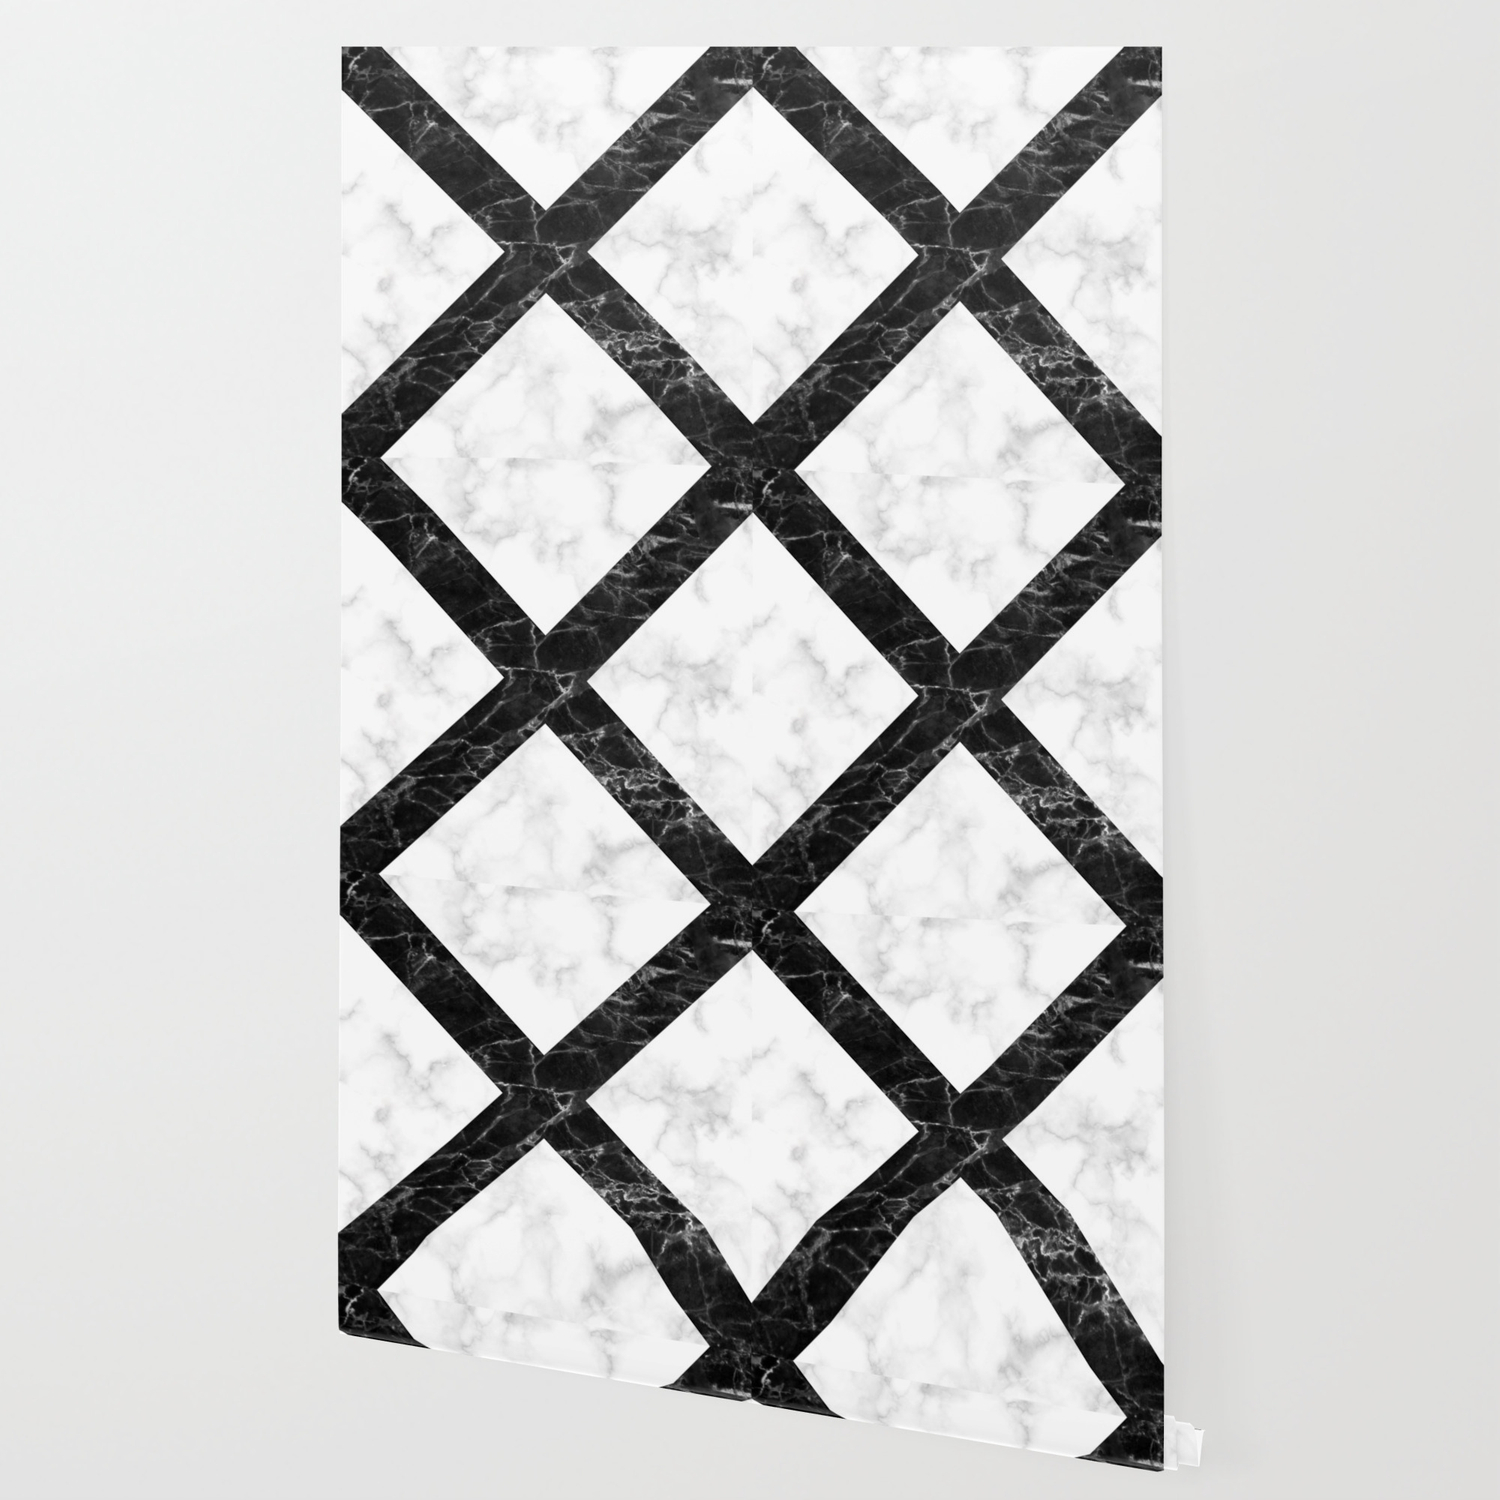 Marble Cross Pattern White Marble Black Marble Wallpaper